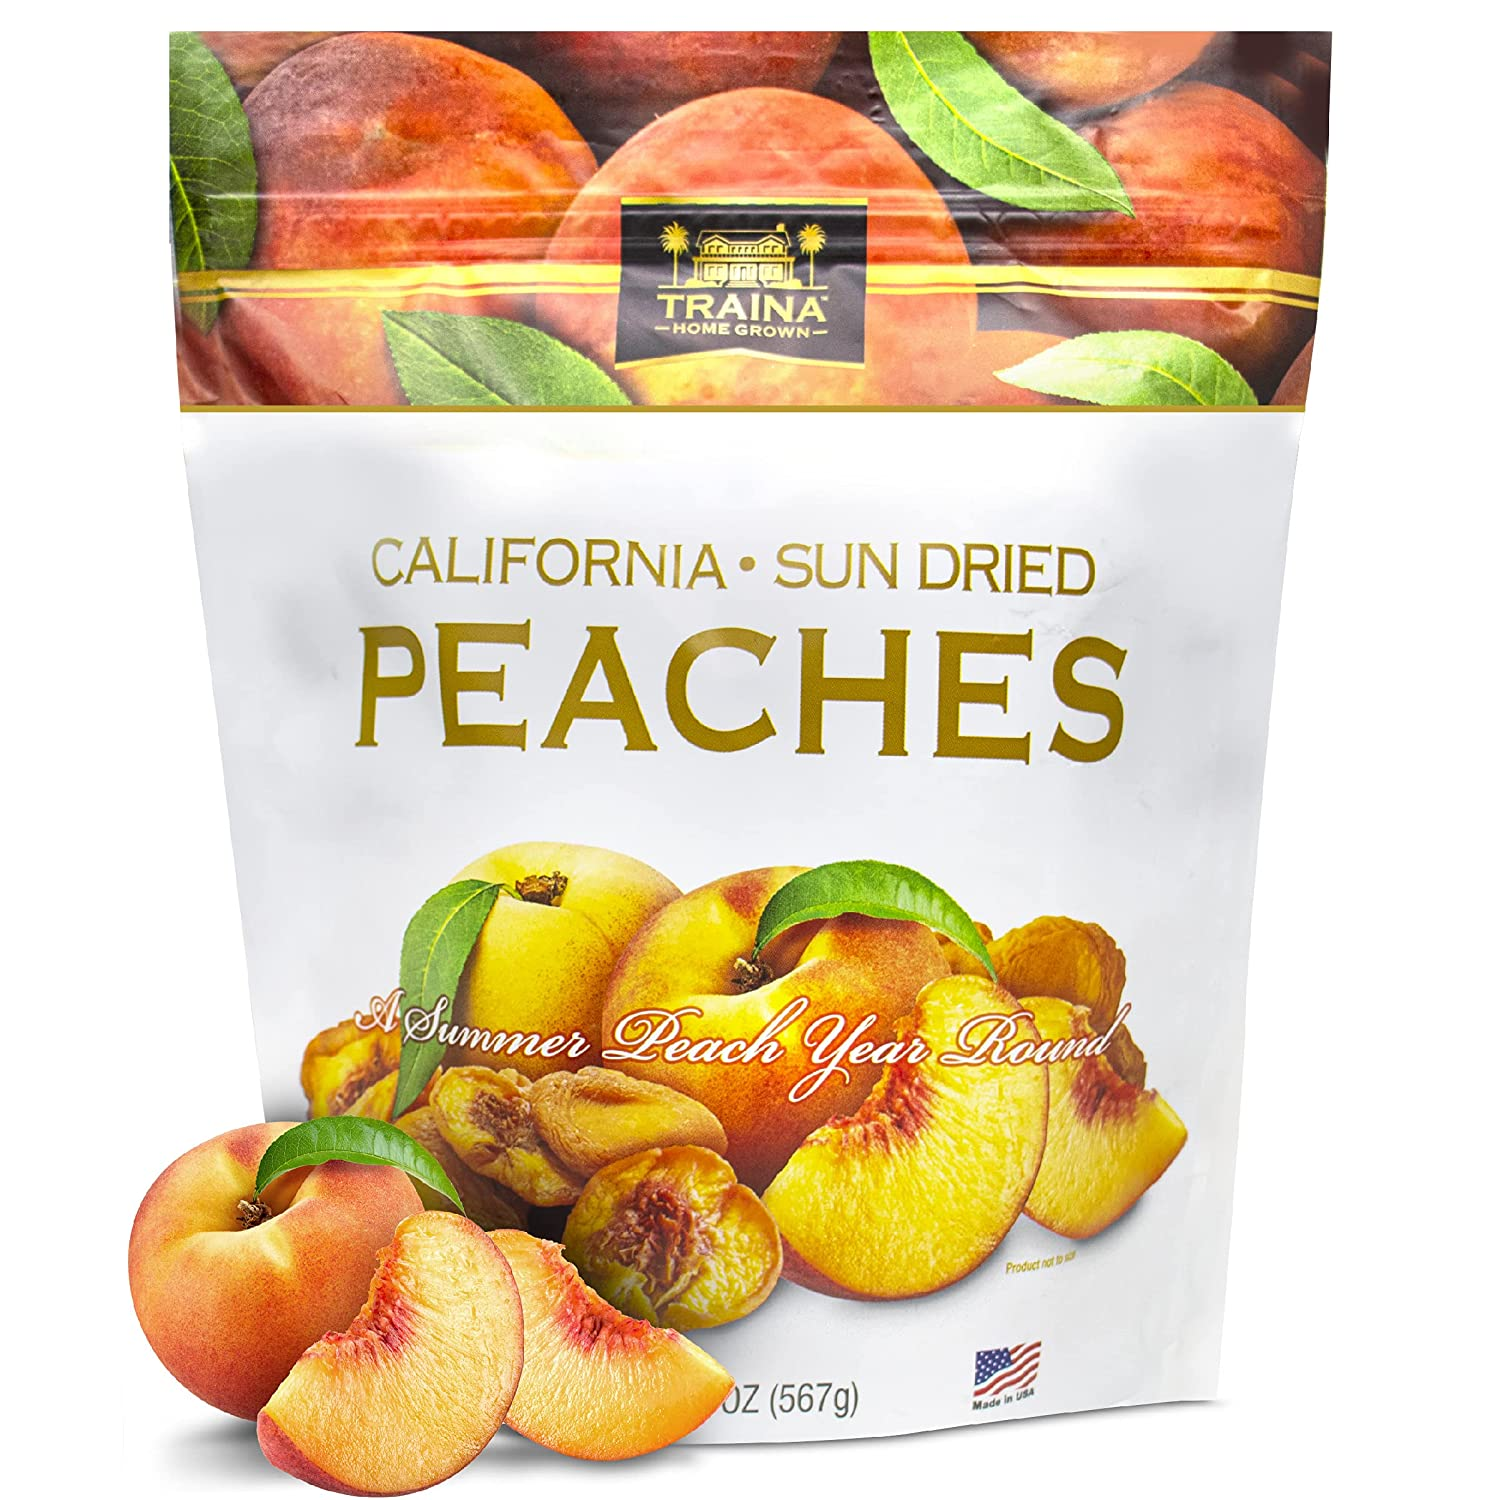 Traina Home Grown California Sun Dried Nectarines - Healthy & Non-GMO, Natural Sweet Flavor Fruit No Sugar Added, Perfect Snack In Resealable Pouch (22 Oz)